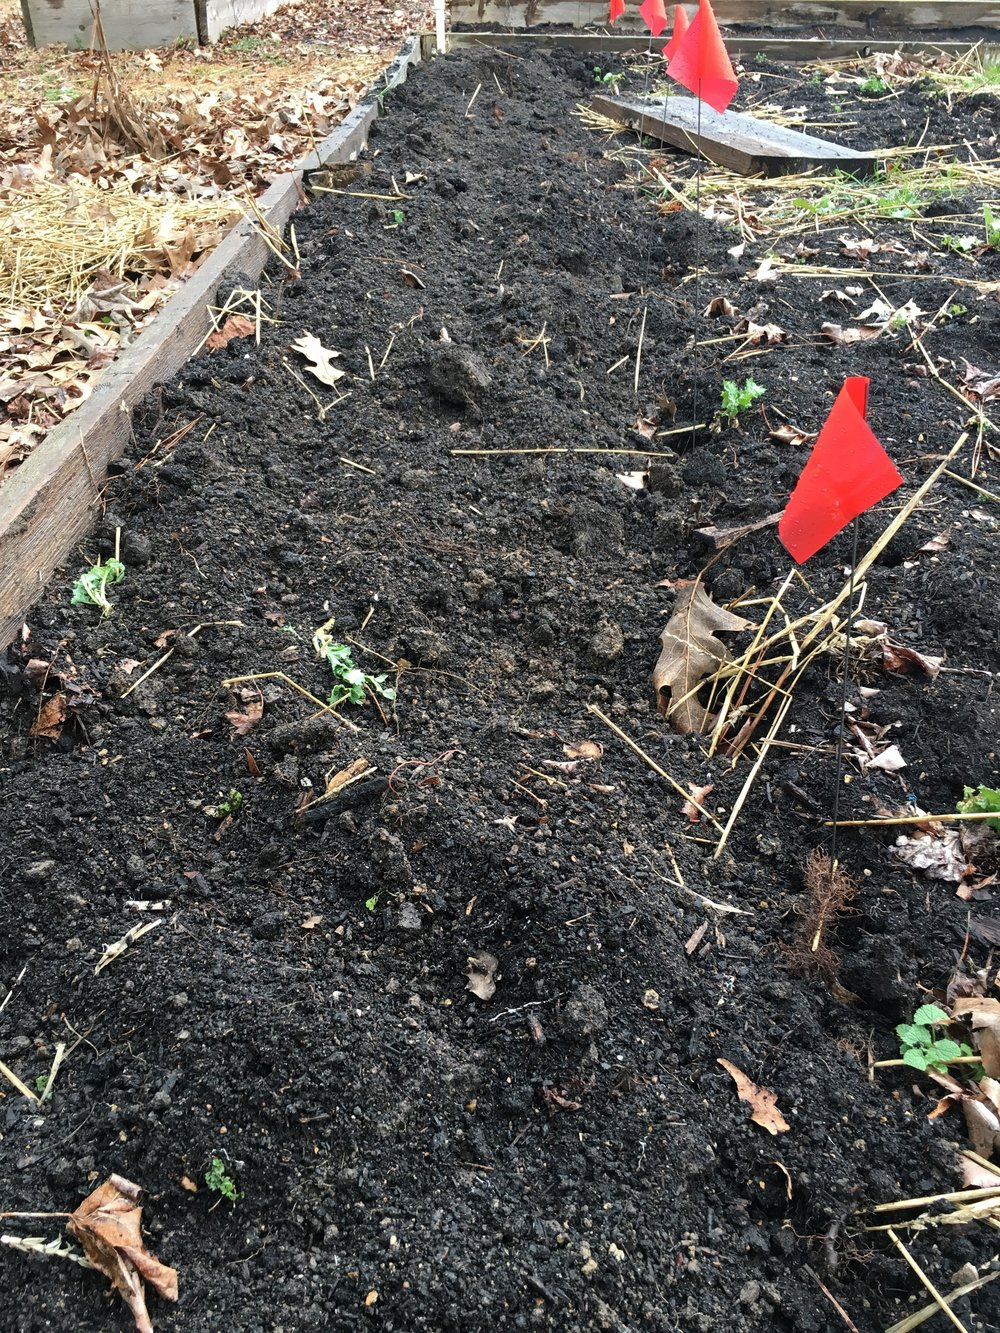 Look at that nice, fluffy soil! Now where did I put that Instagram filter that removes all those weeds?